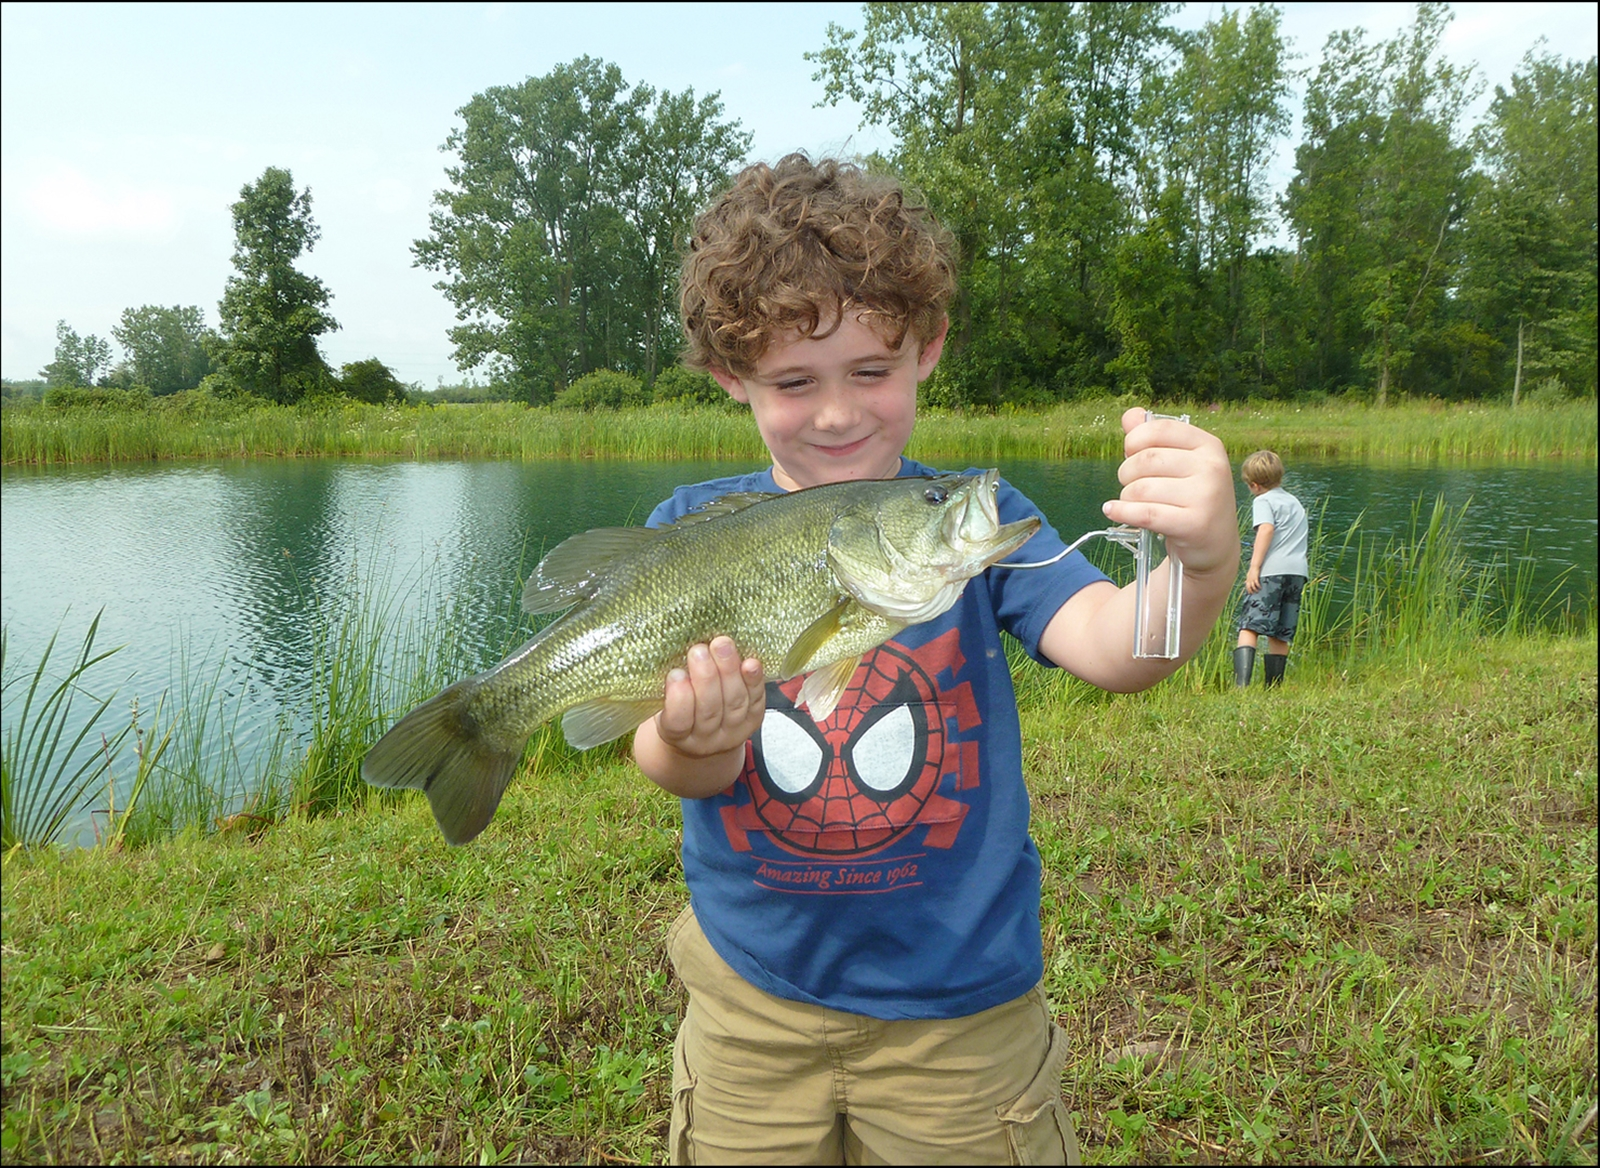 Roger Gough, 4, of Amherst, caught this largemouth bass while fishing with his brother at their grandfather's pond in East Shelby.